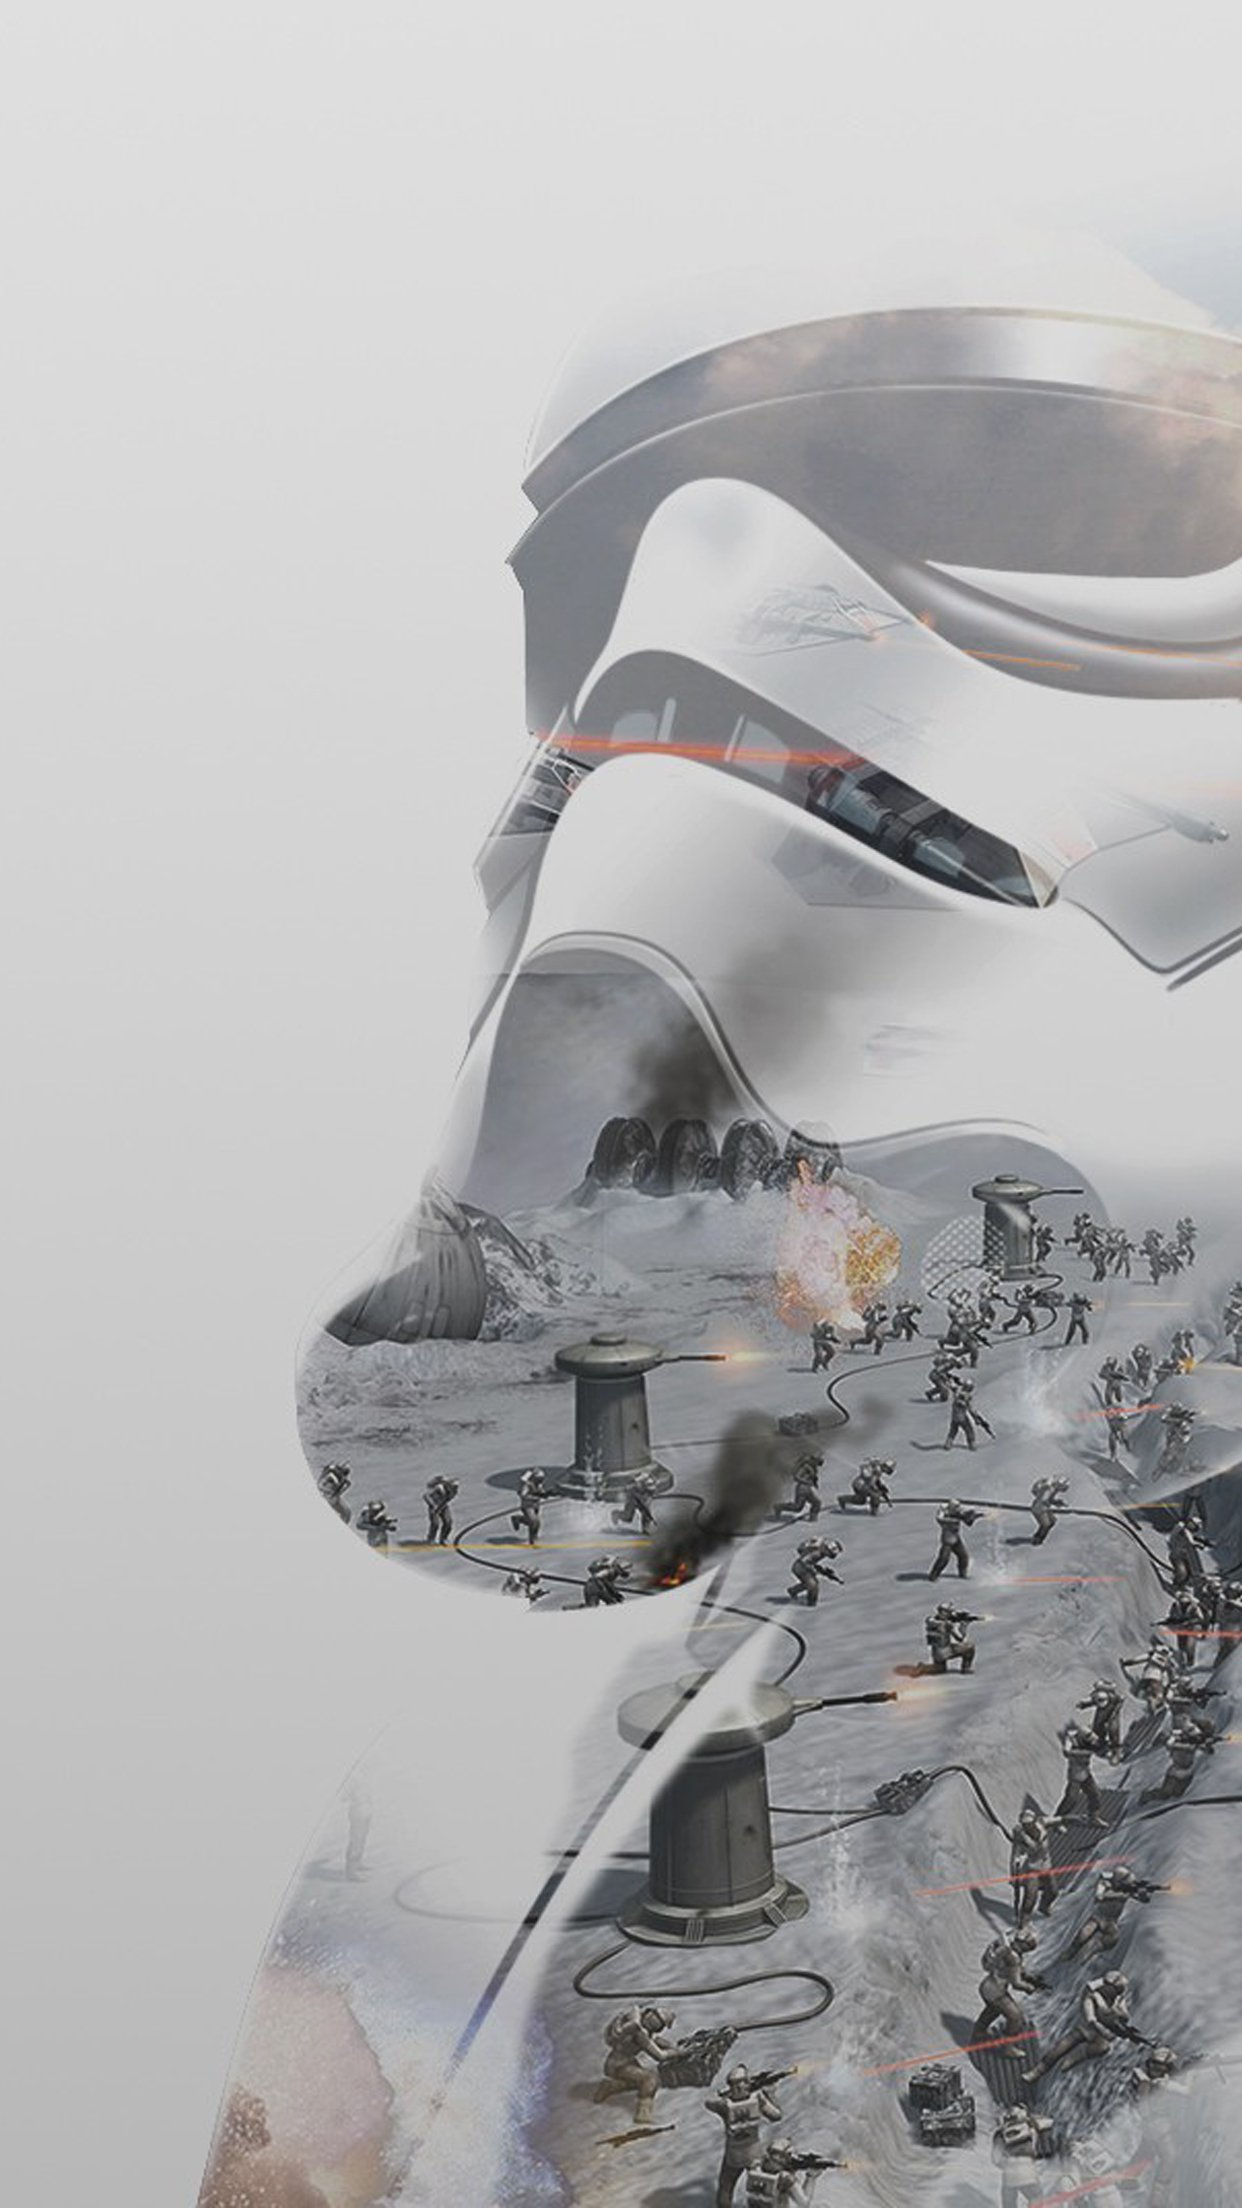 Star Wars wallpapers for iPhone 1242x2208